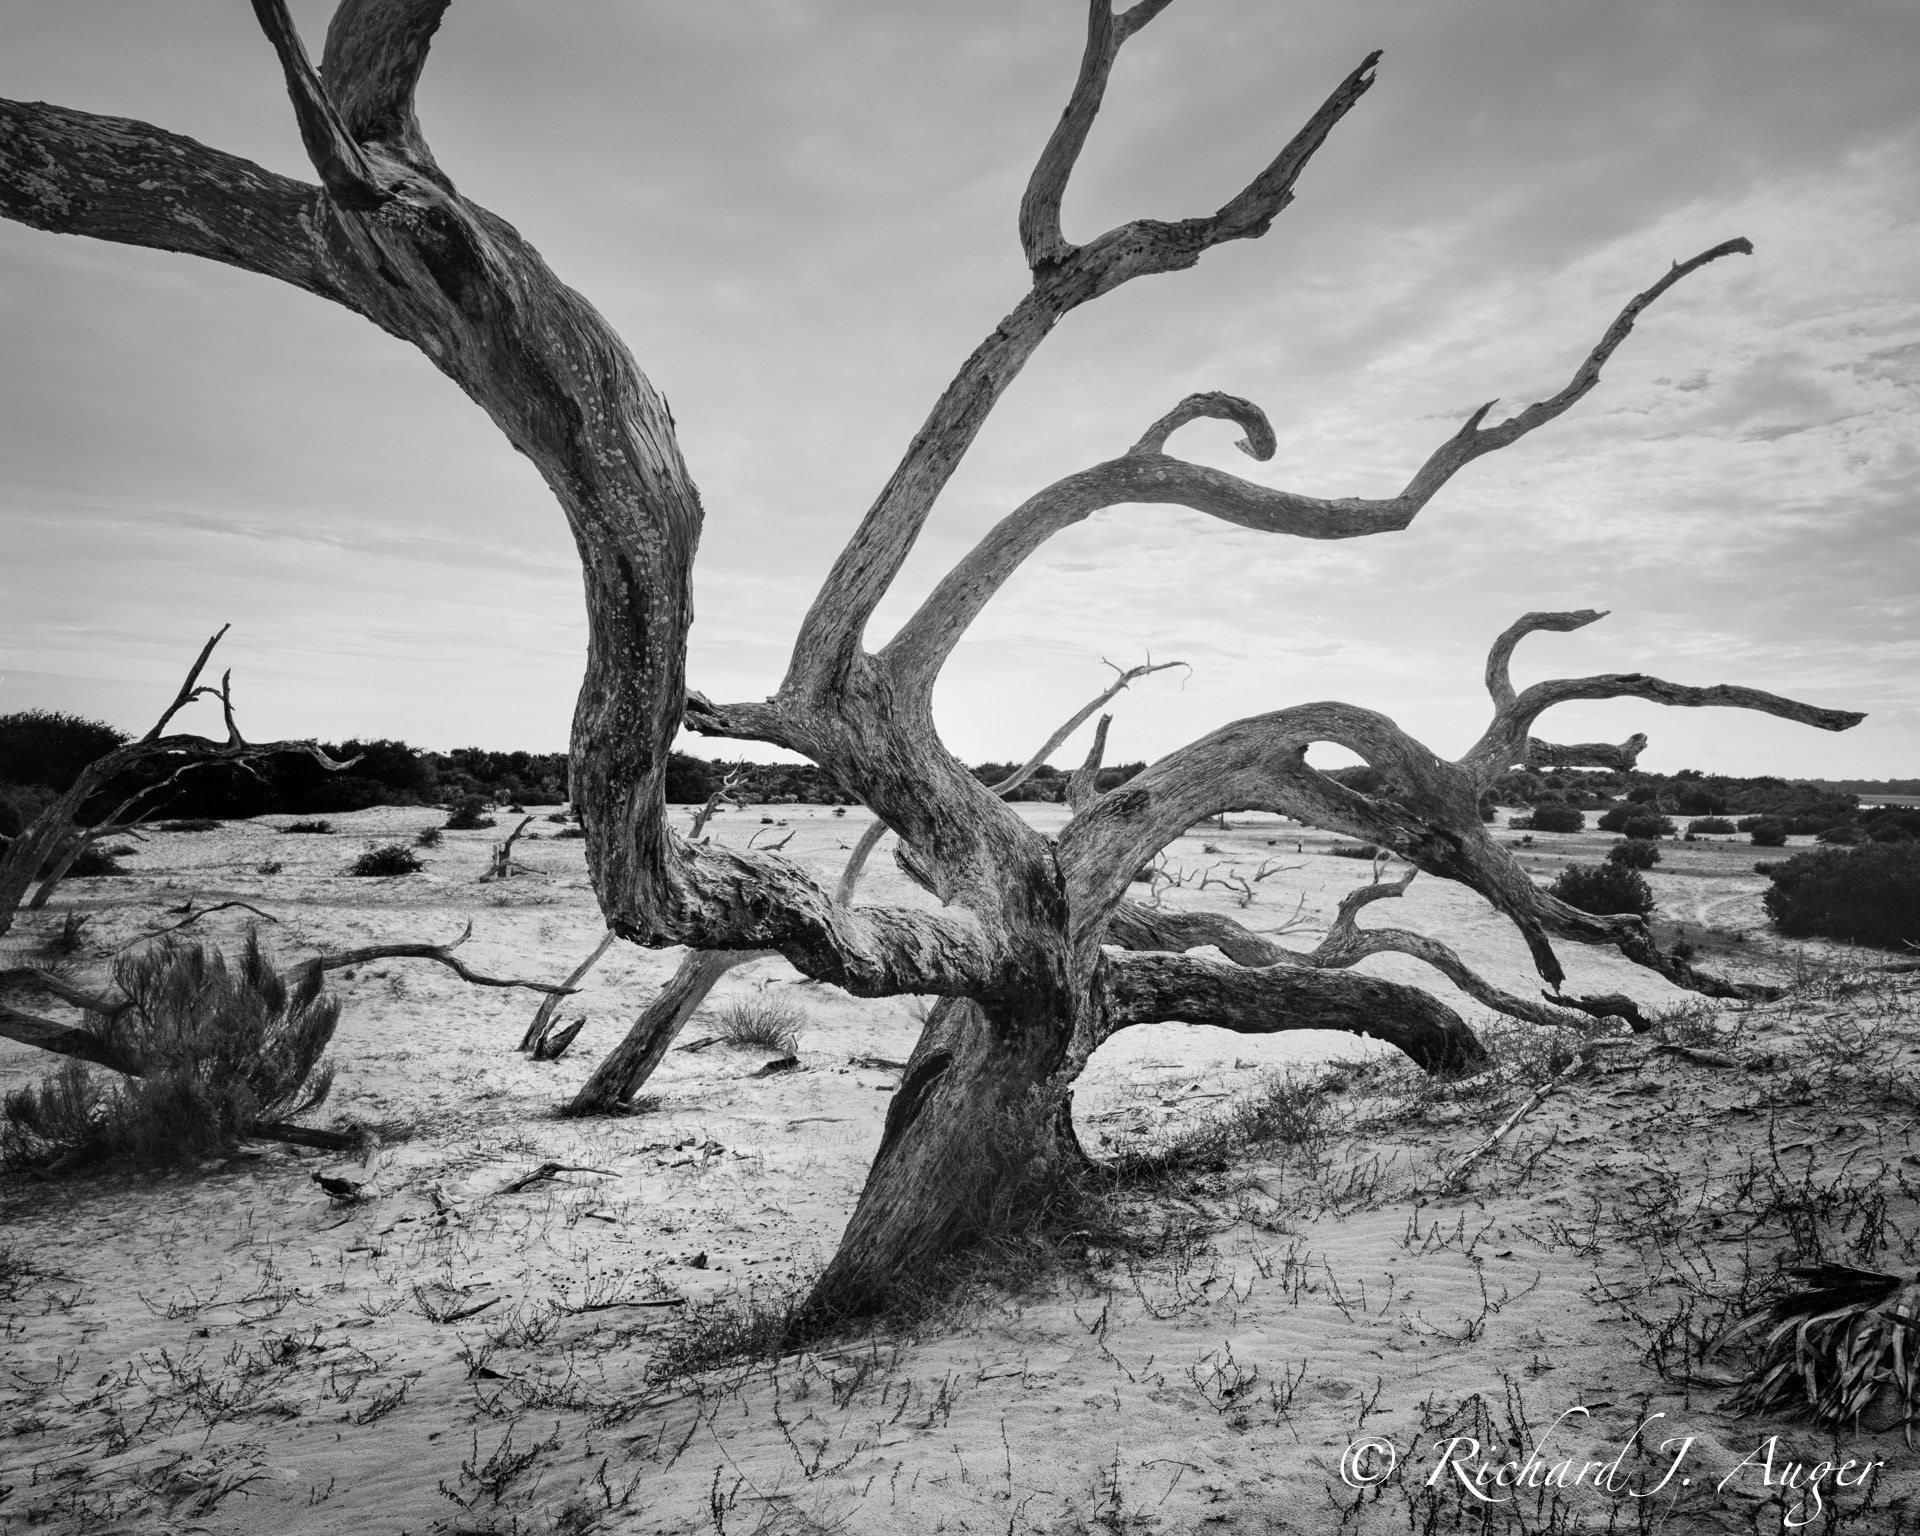 Cumerbland Island, Georgia, Driftwood, Black and White, Nature, Photographer